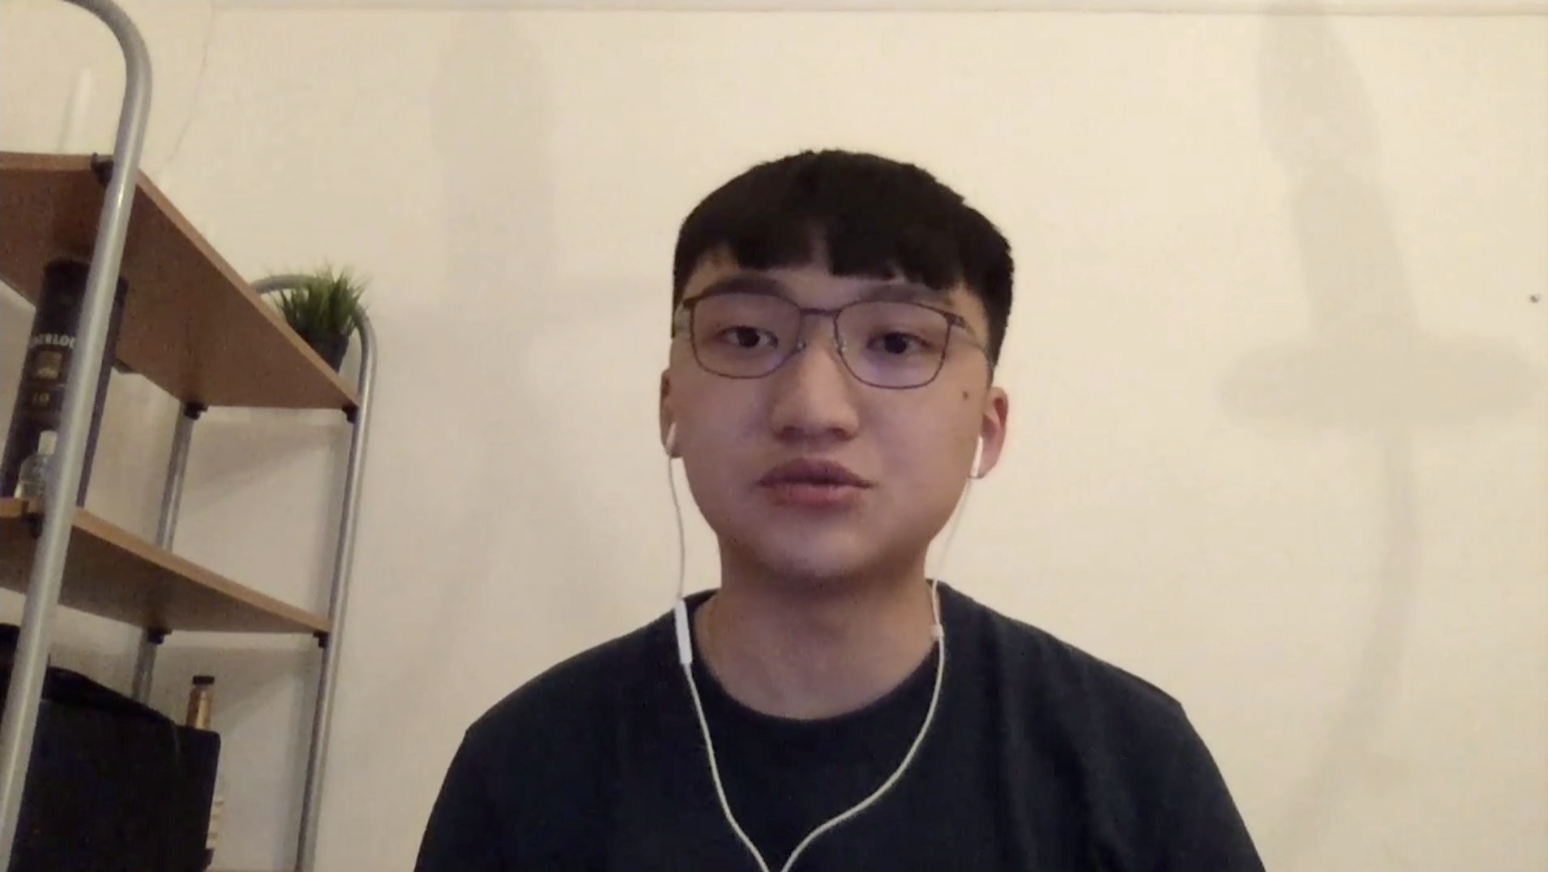 'I fear for my personal safety and security' – Hong Kong pro-democracy campaigner Isaac Cheng - channel 4